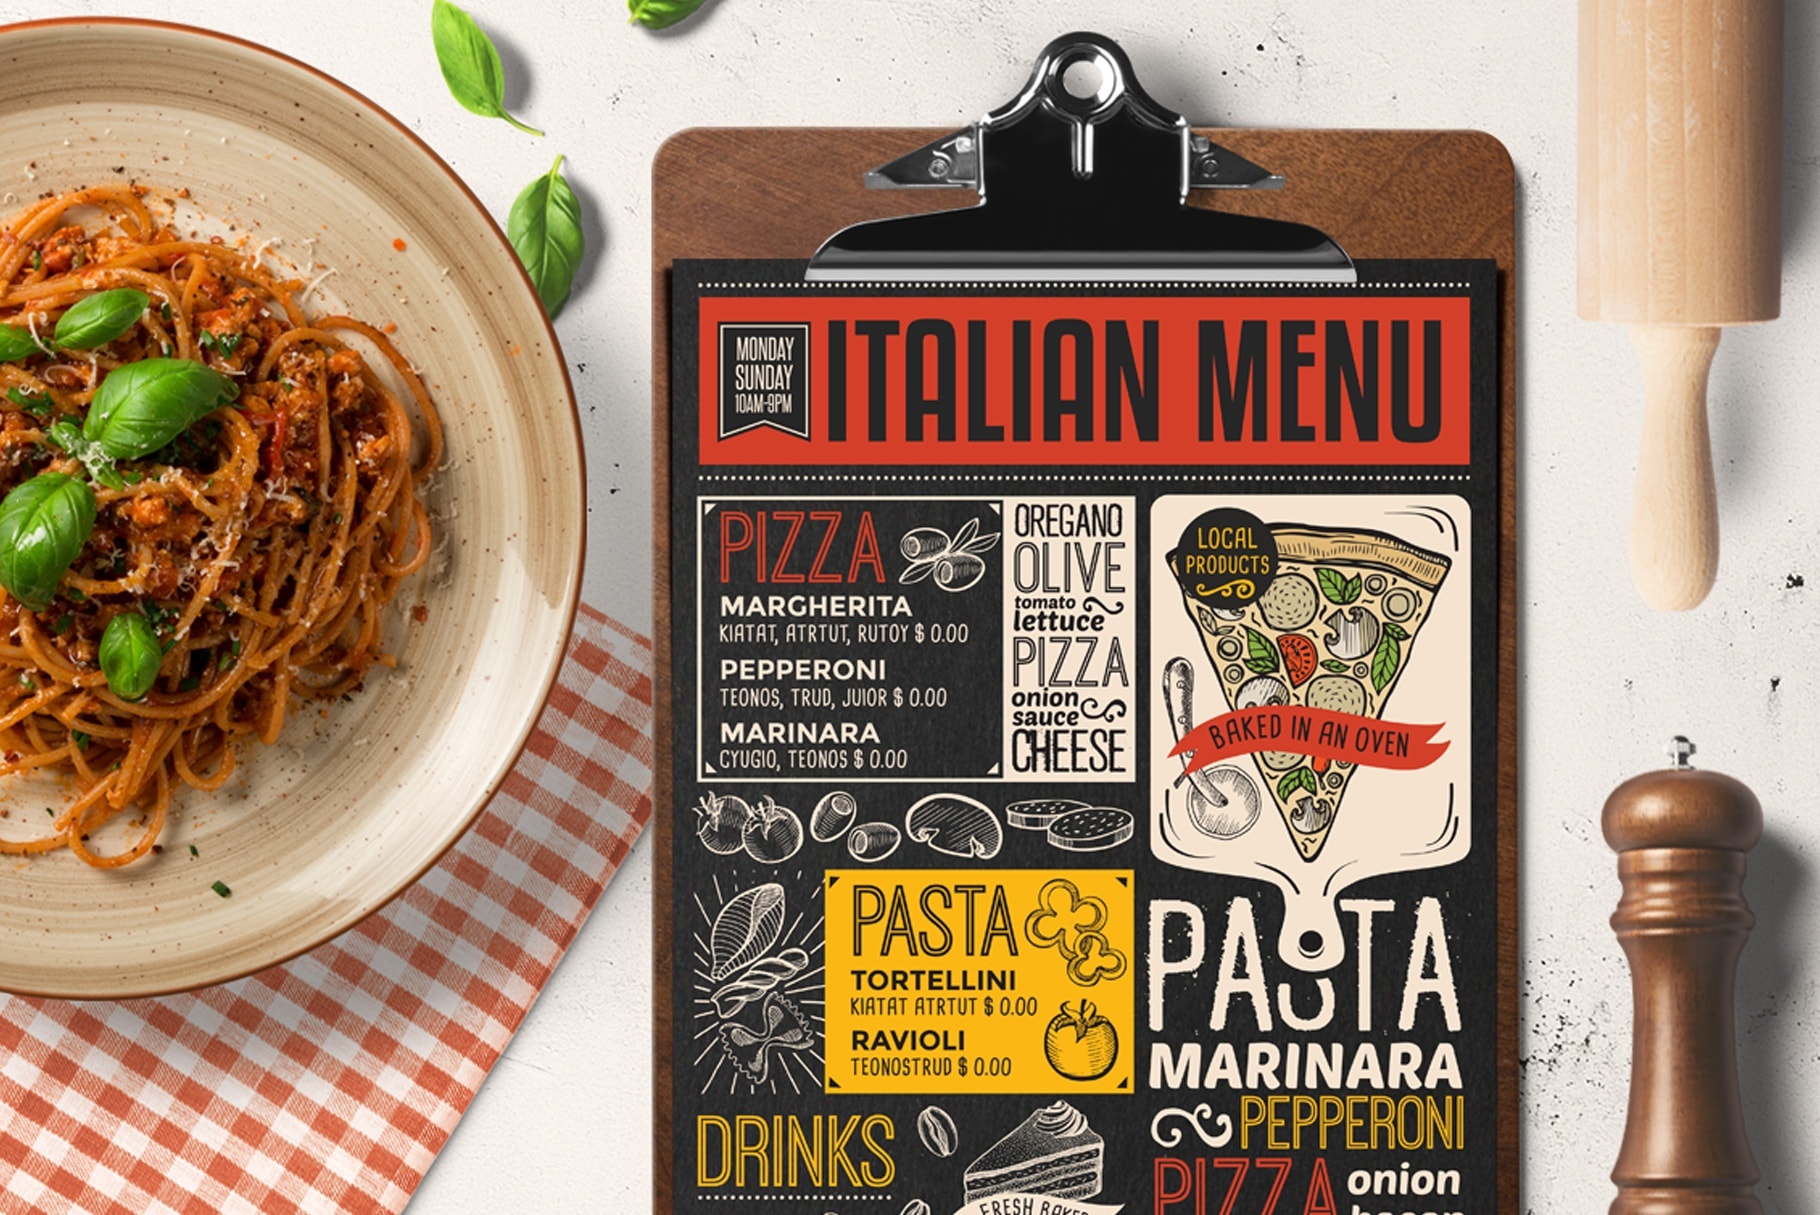 pizza pasta menu template design for restaurant with hand drawn illustrations